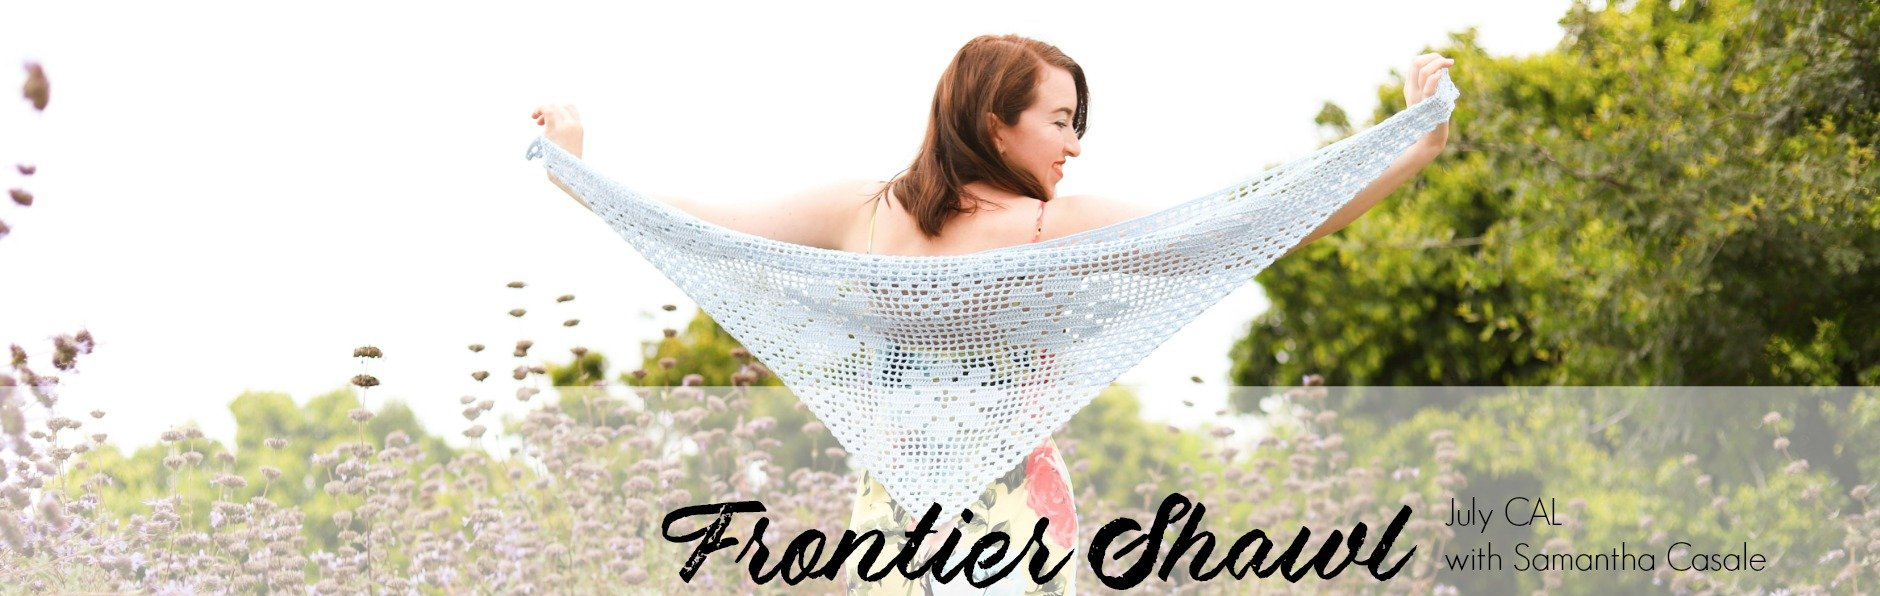 frontier shawl banner